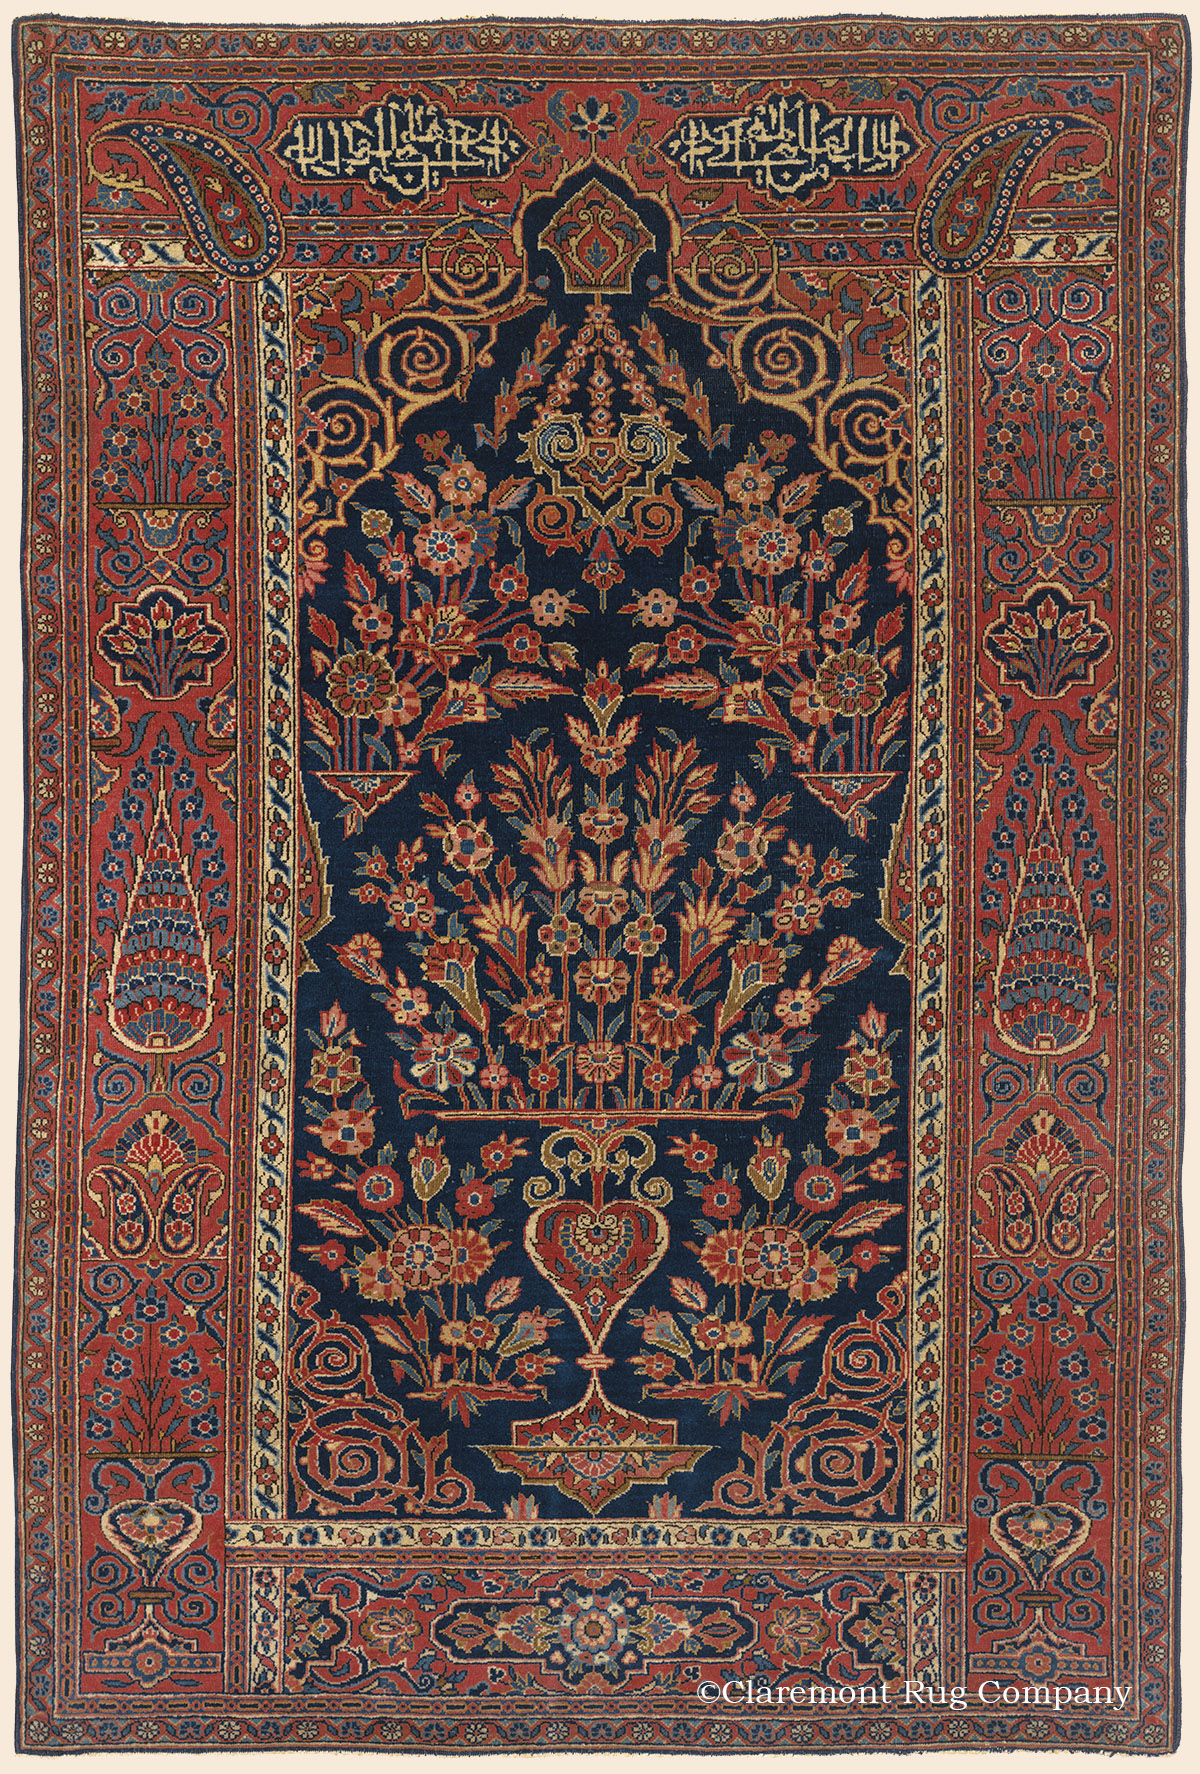 Kashan Prayer Rug Central Persian Antique Rug Claremont